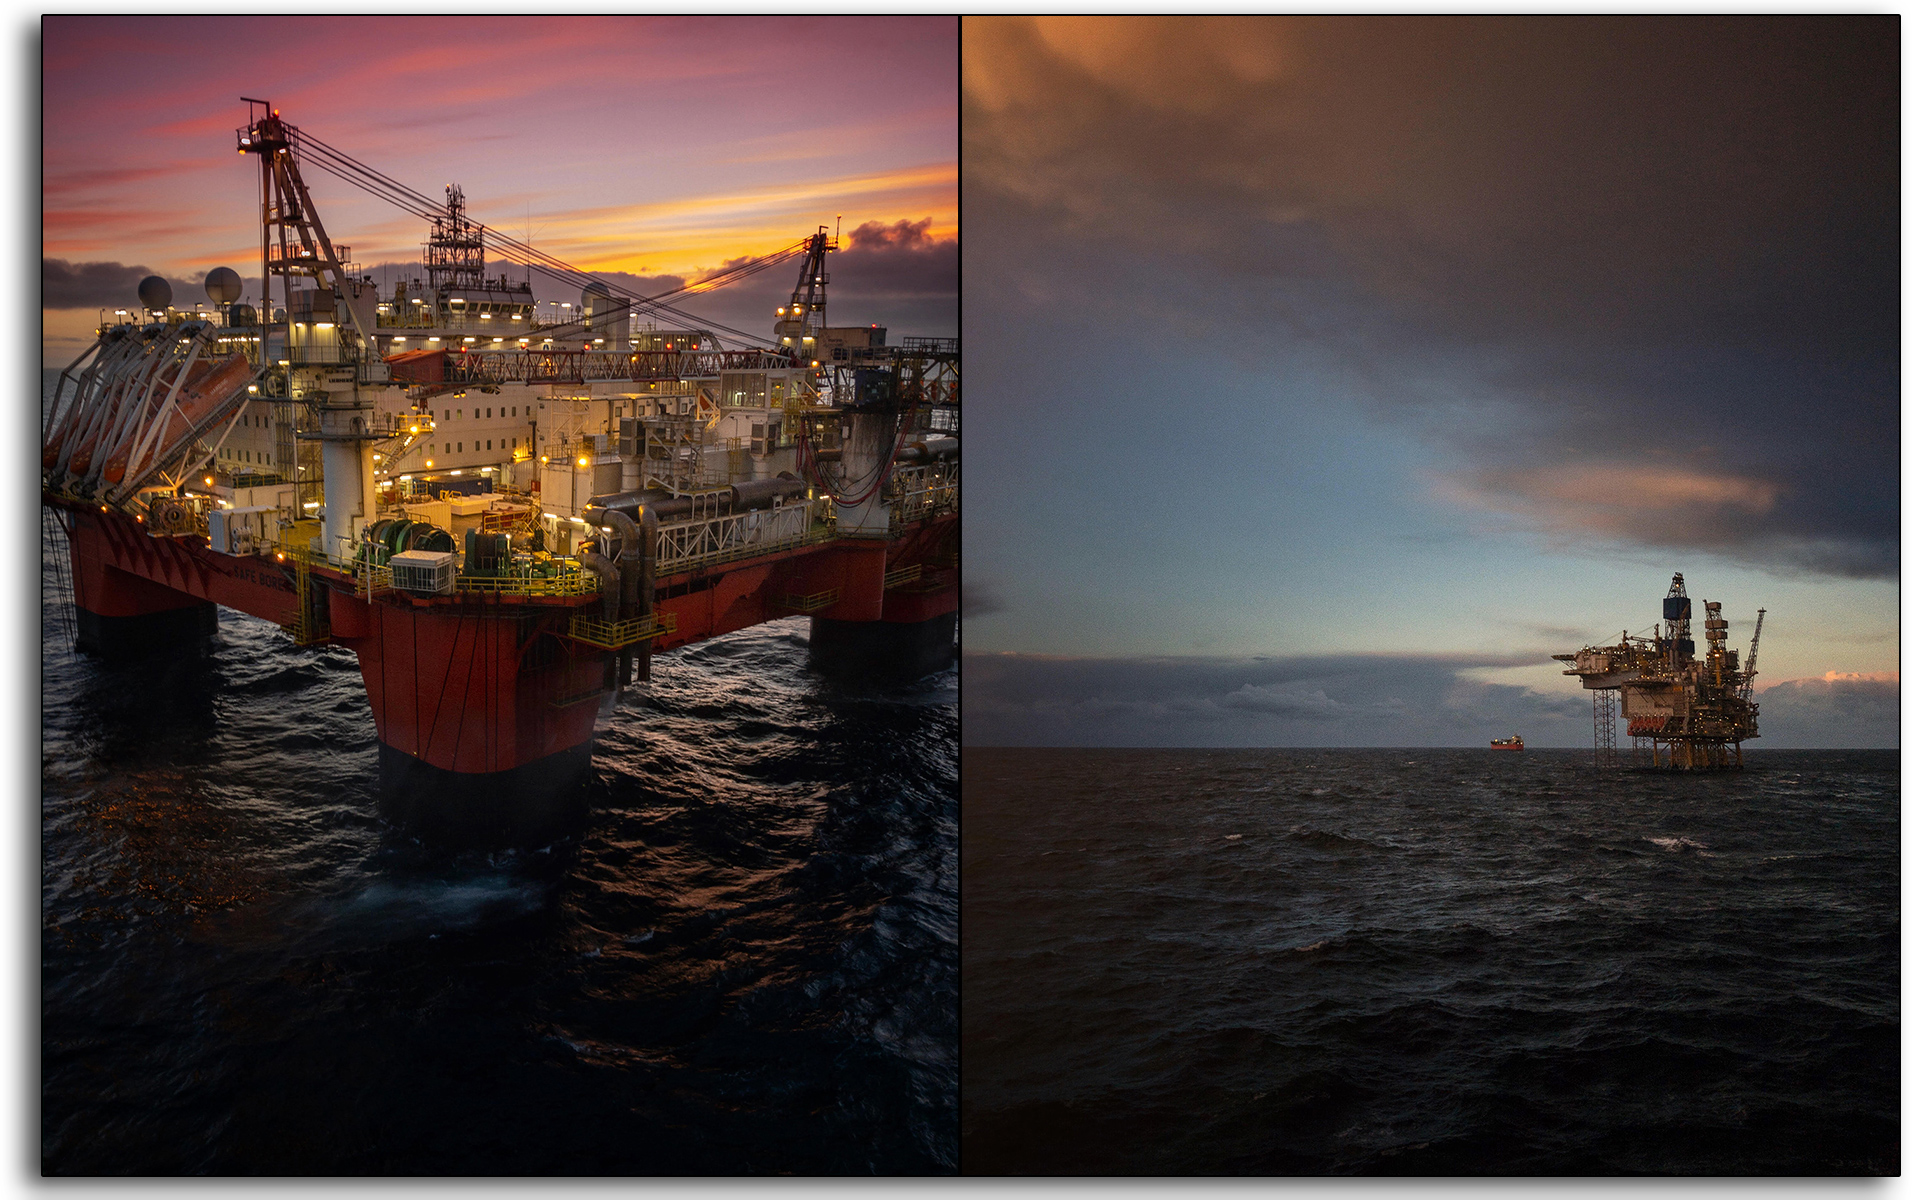 Safe Boreas, Sunset, flotel, accomodation, vessel, Oil and gas, oil rig, Scotland, industry, industrial, Mariner, workers, construction.jpg